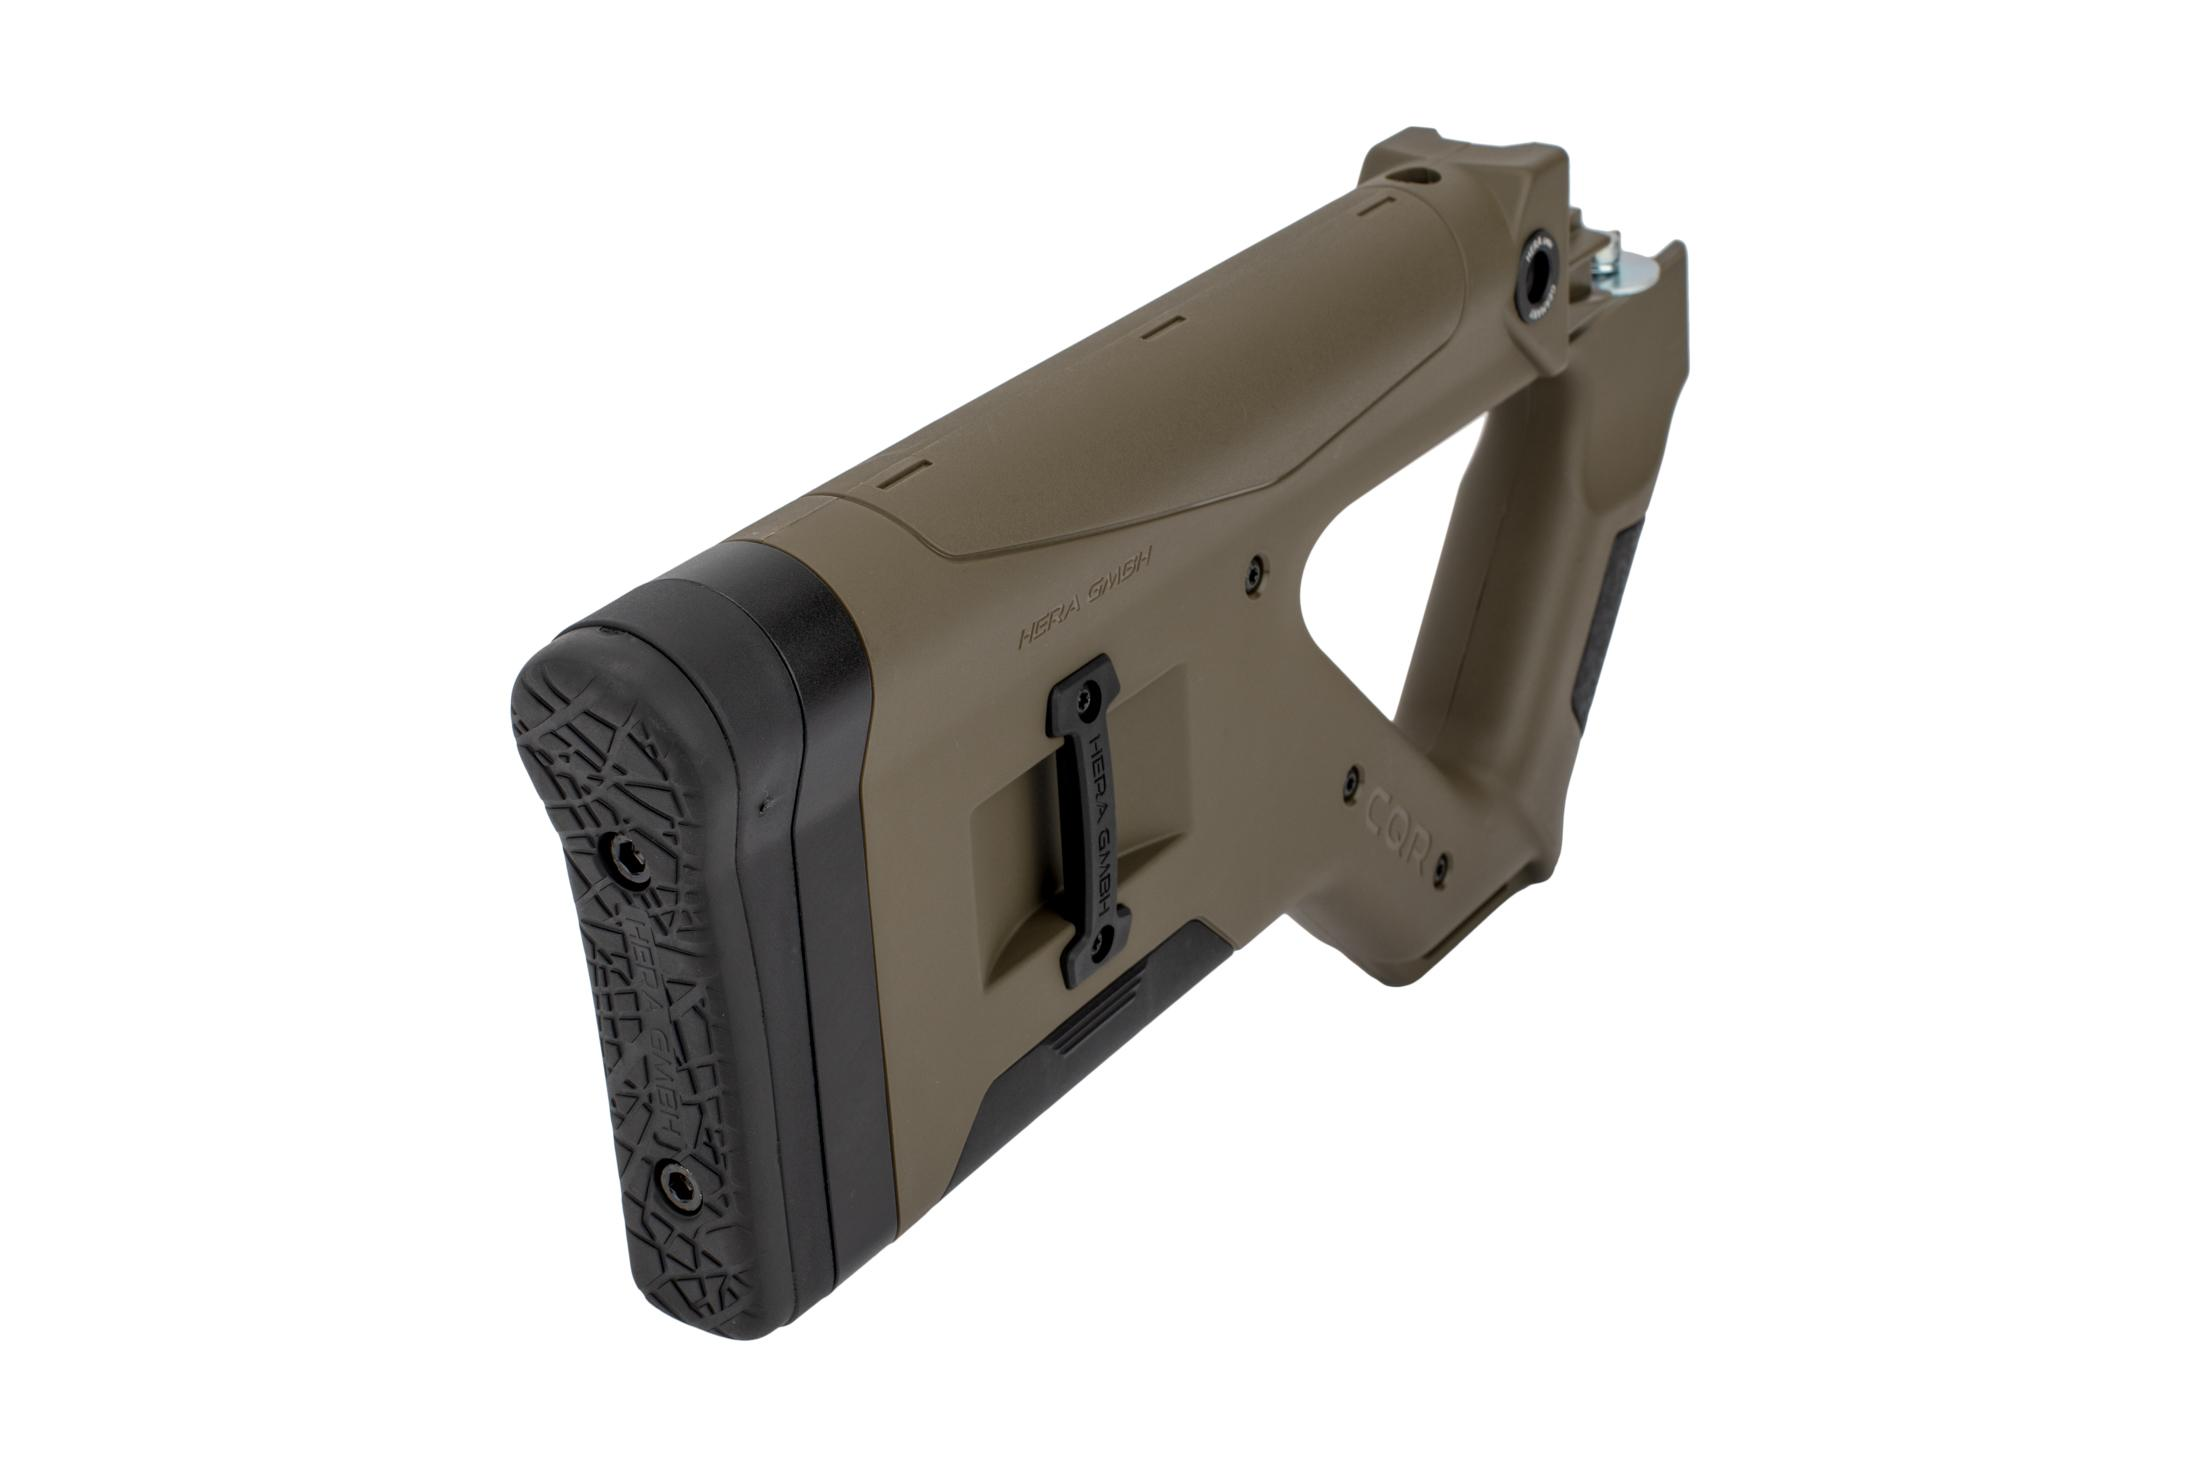 The Hera Arms CQR AK buttstock has spacers for adjusting the length of pull